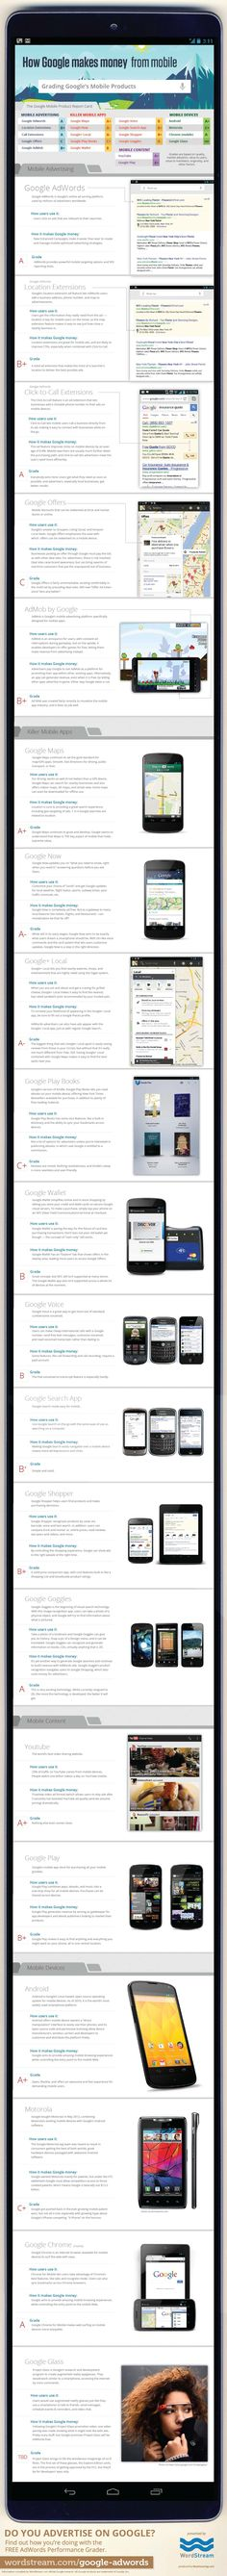 #Mobile #Infographic: Google Mobile Monetization - How does Google make money from mobile